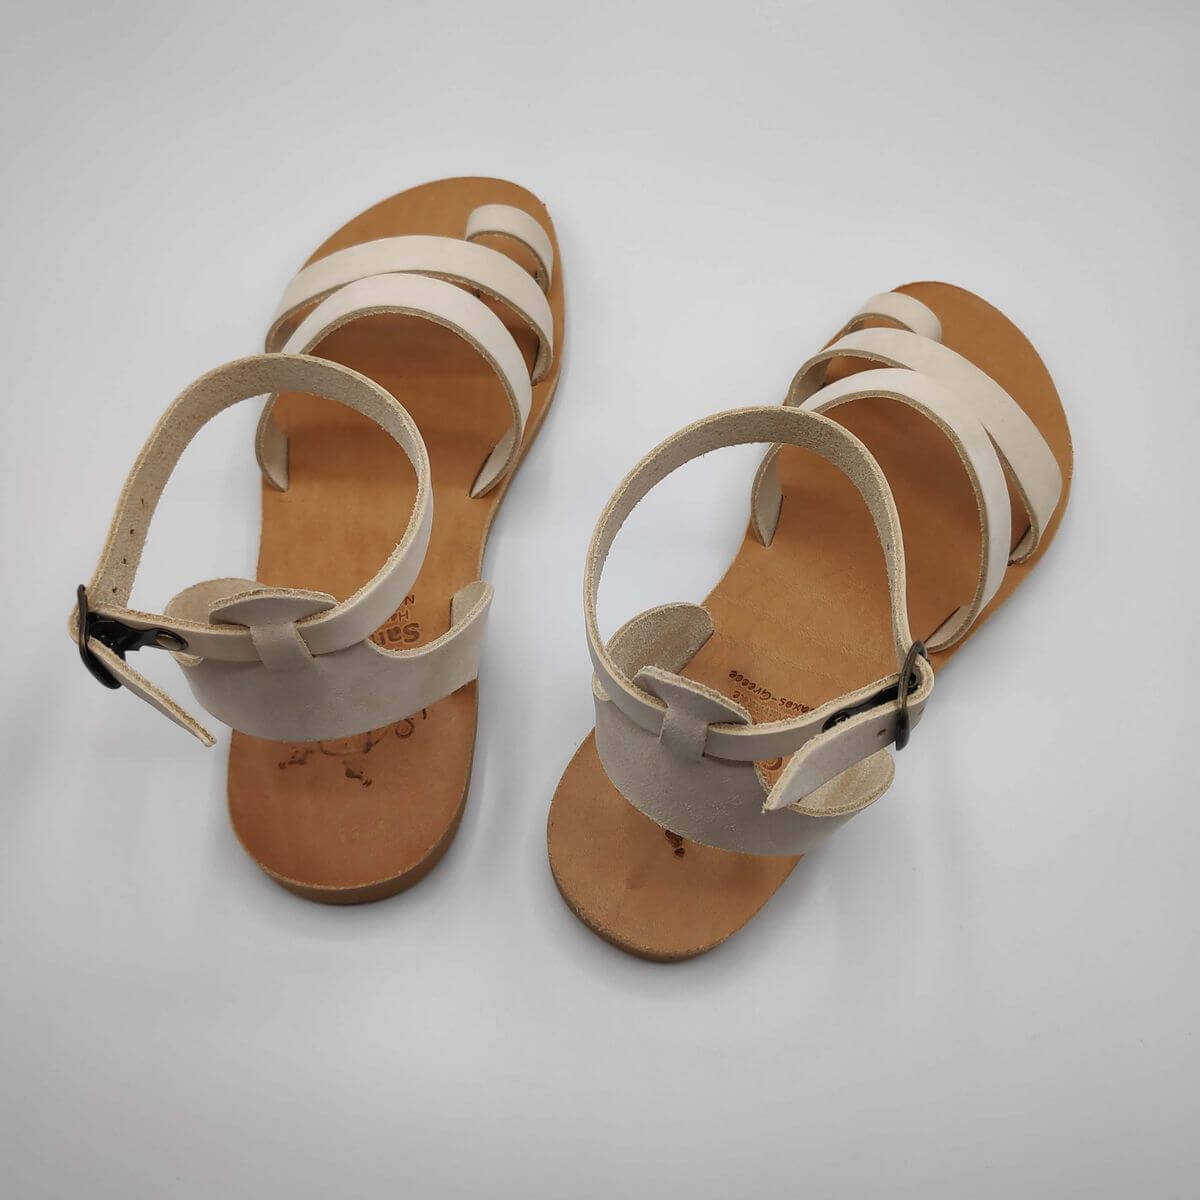 White nubuck leather dressy sandals with two straps, toe ring and high ankle strap, back view